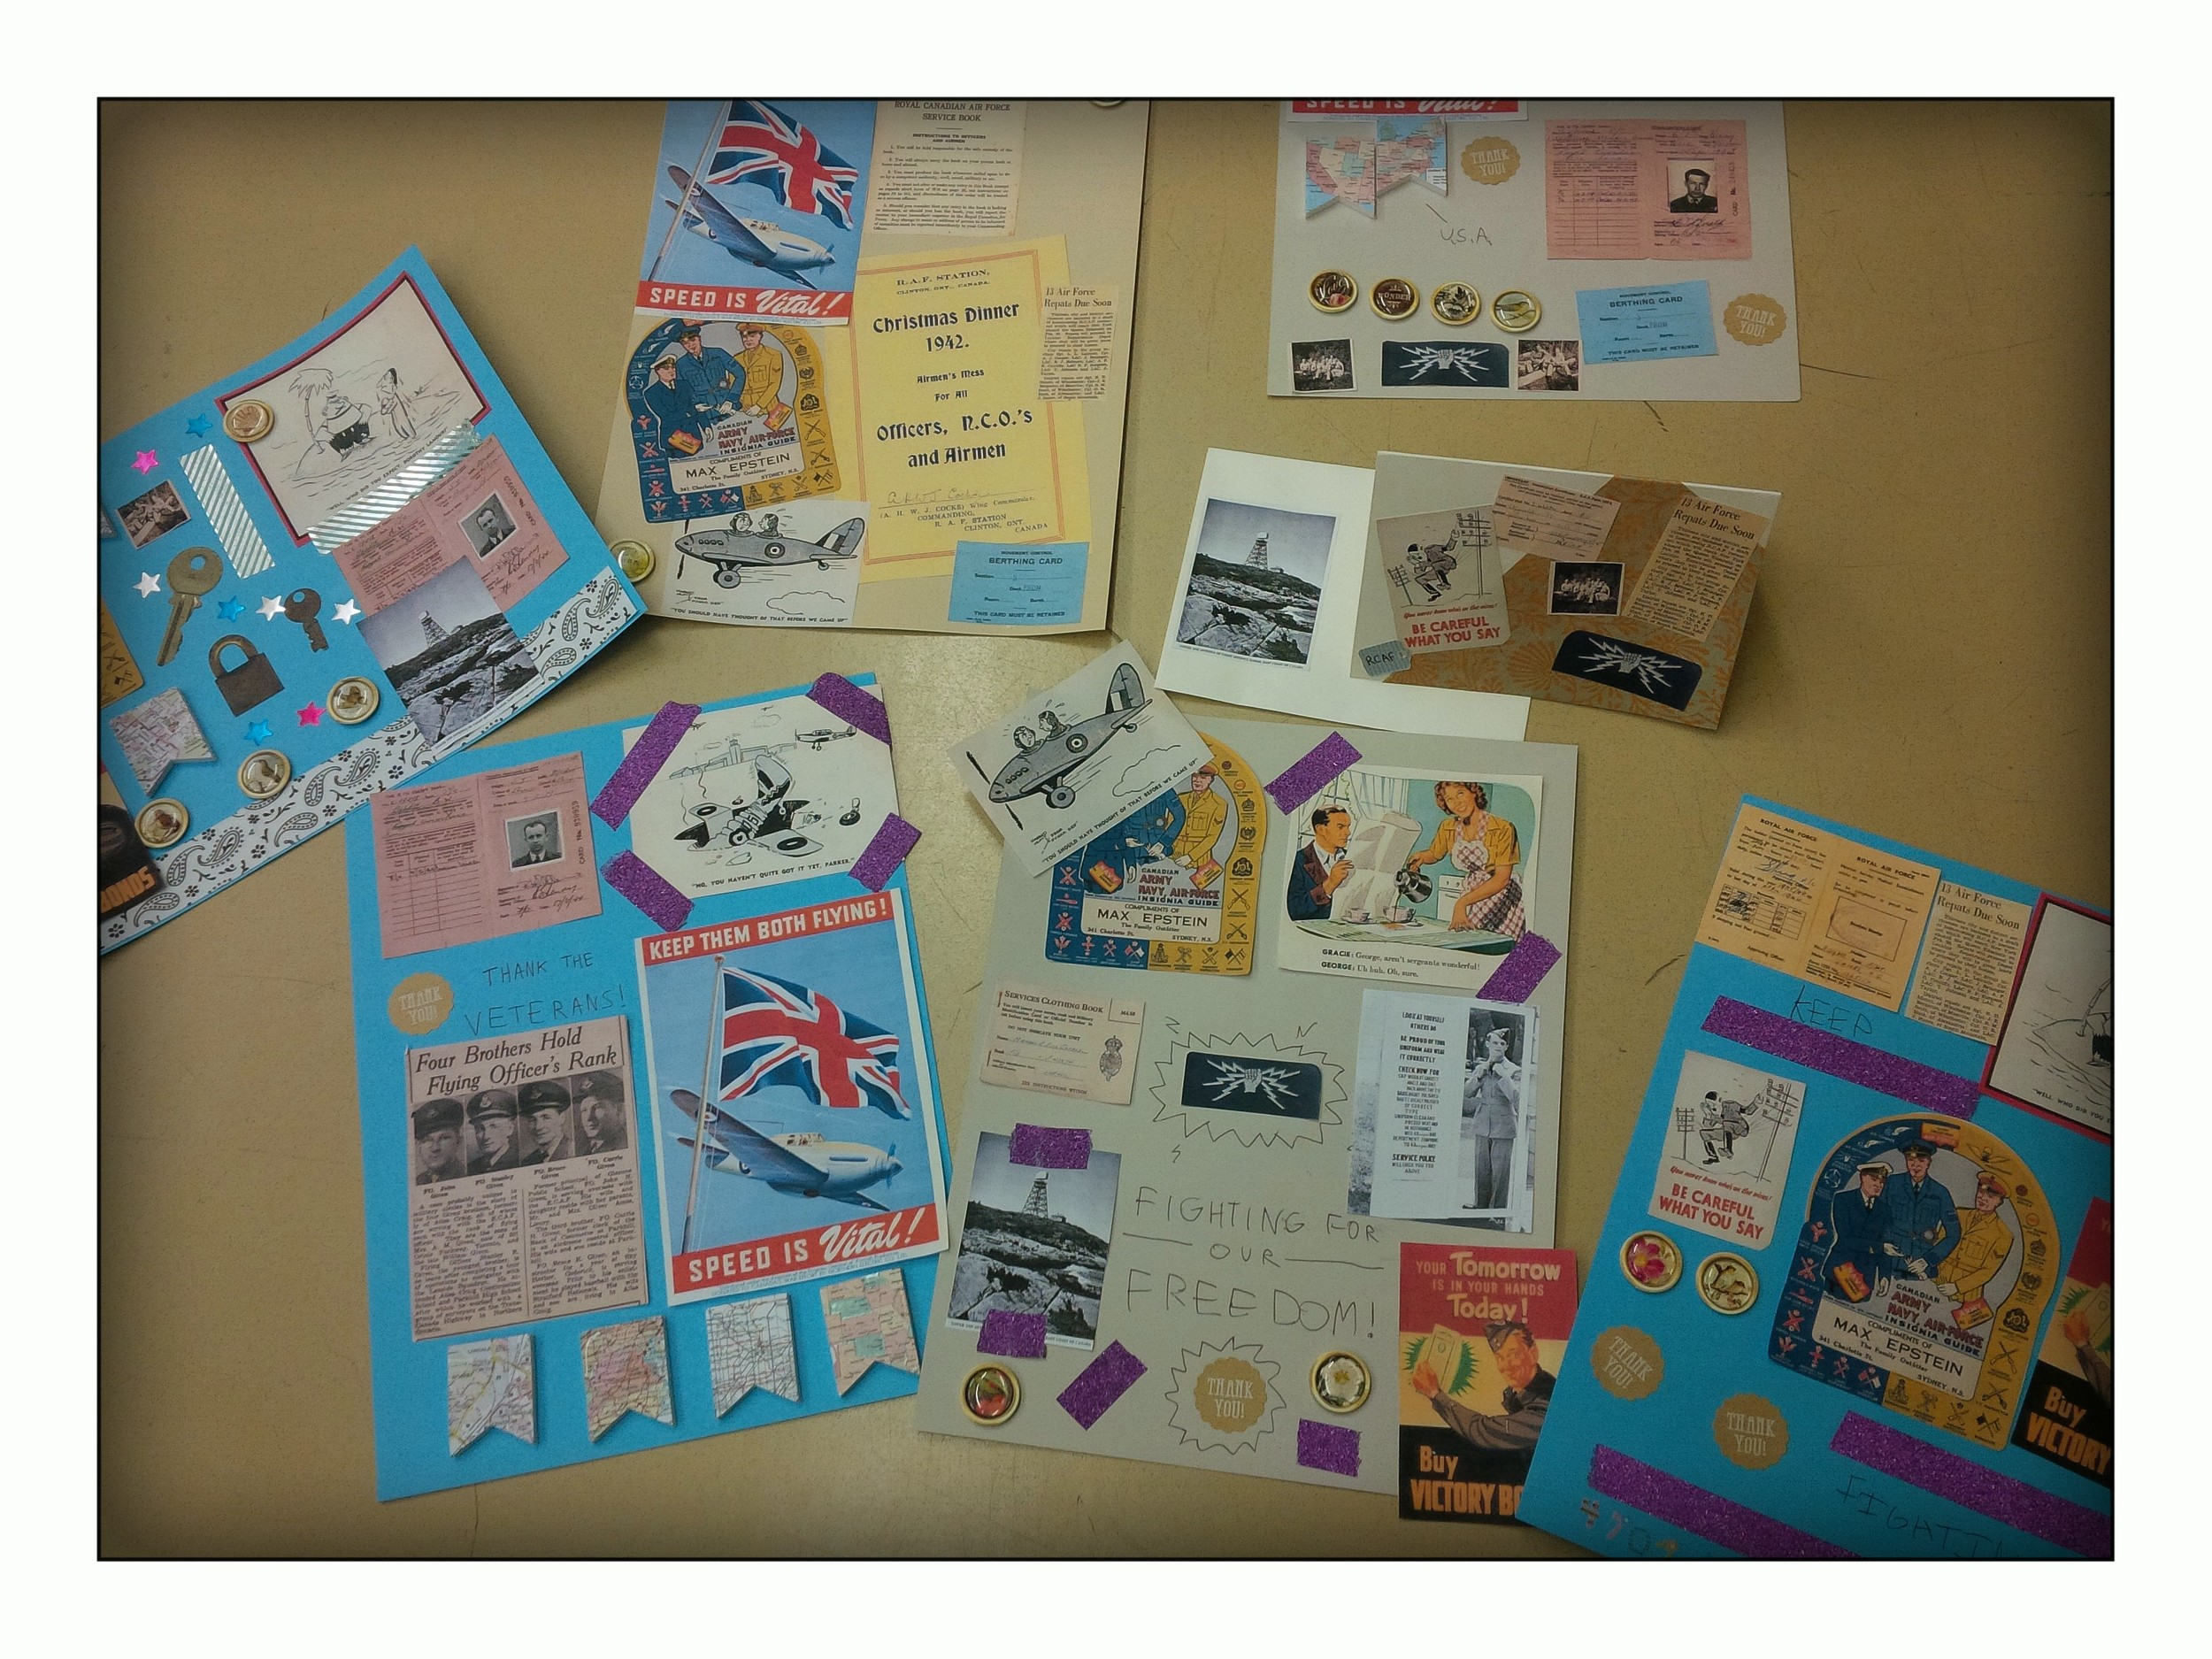 Examples of scrapbooking/collage done by both children and adults at our events.